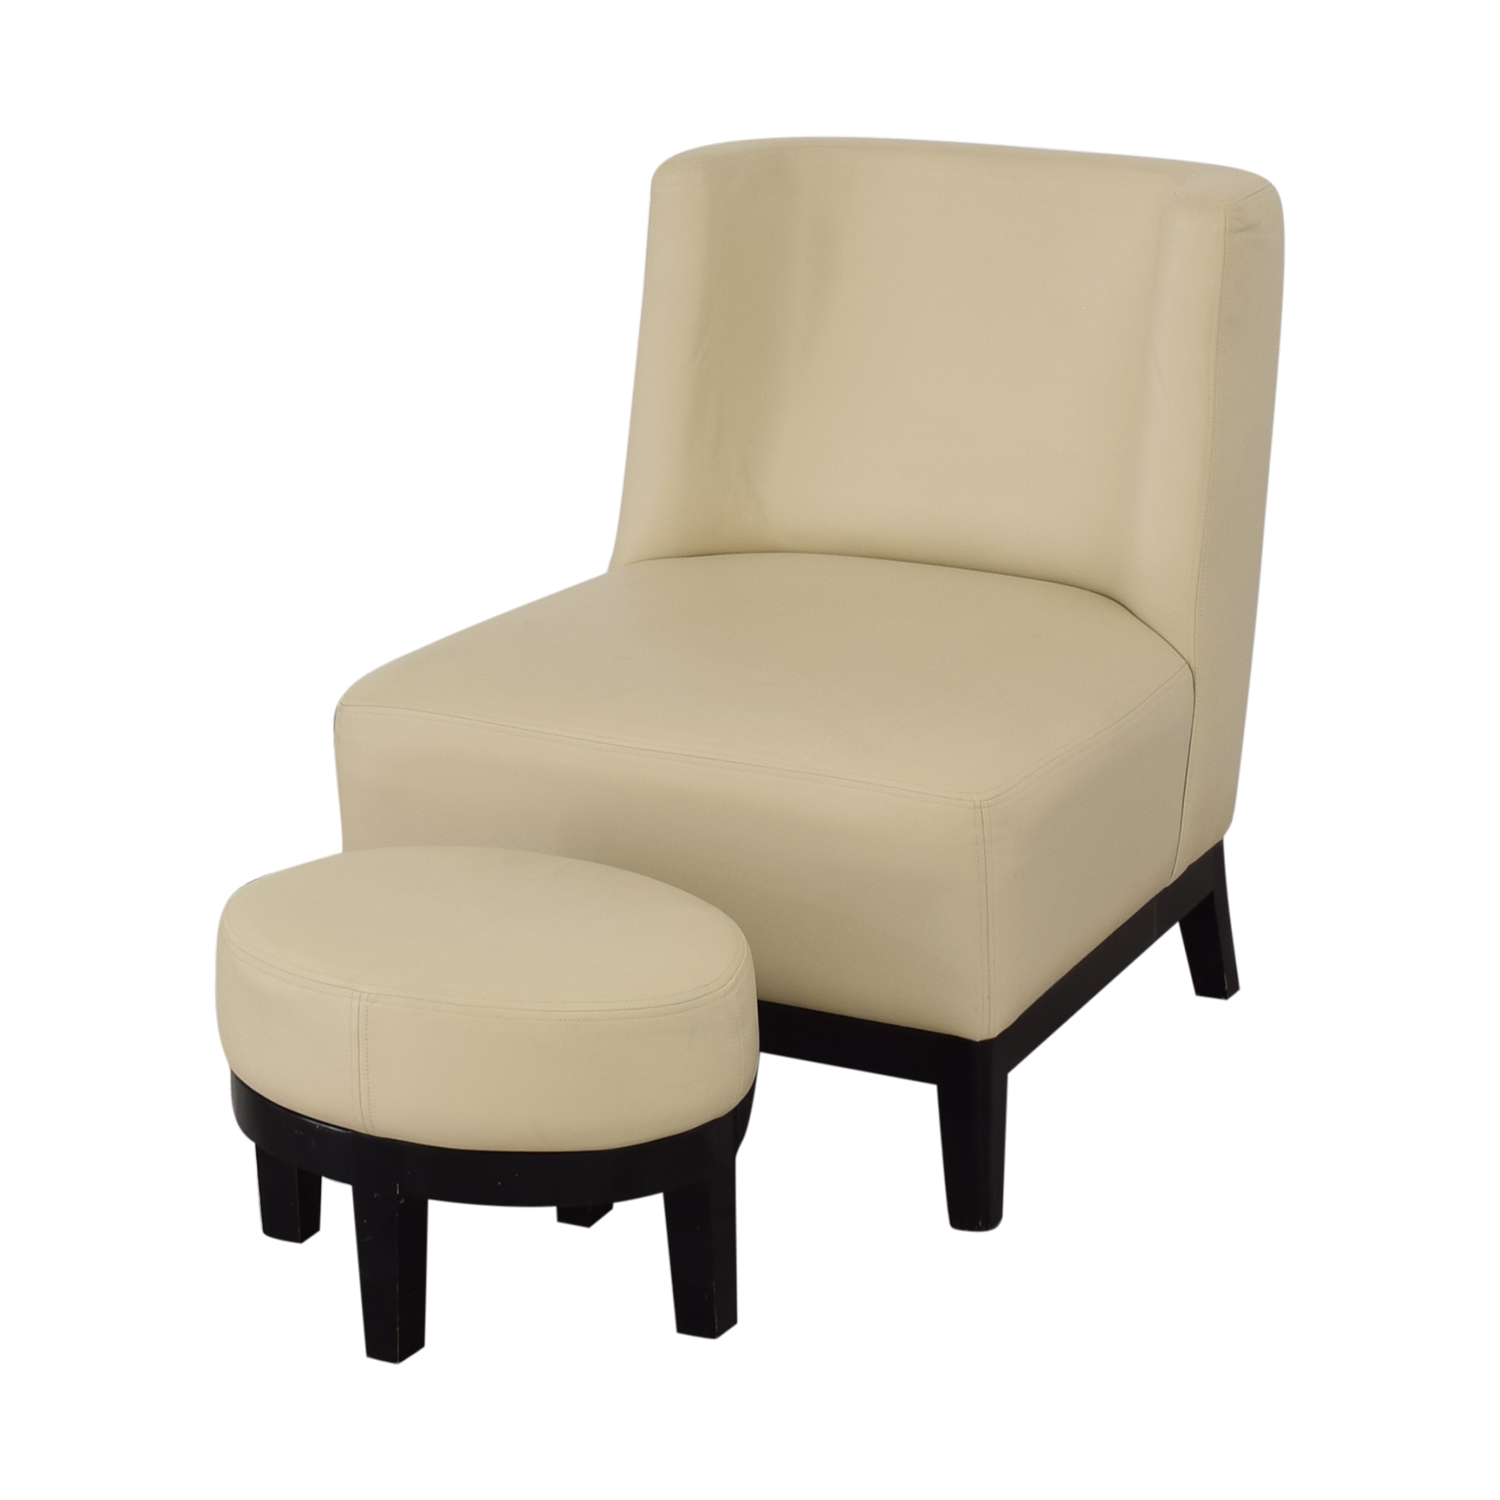 Armless Lounge Chair and Footstool / Accent Chairs